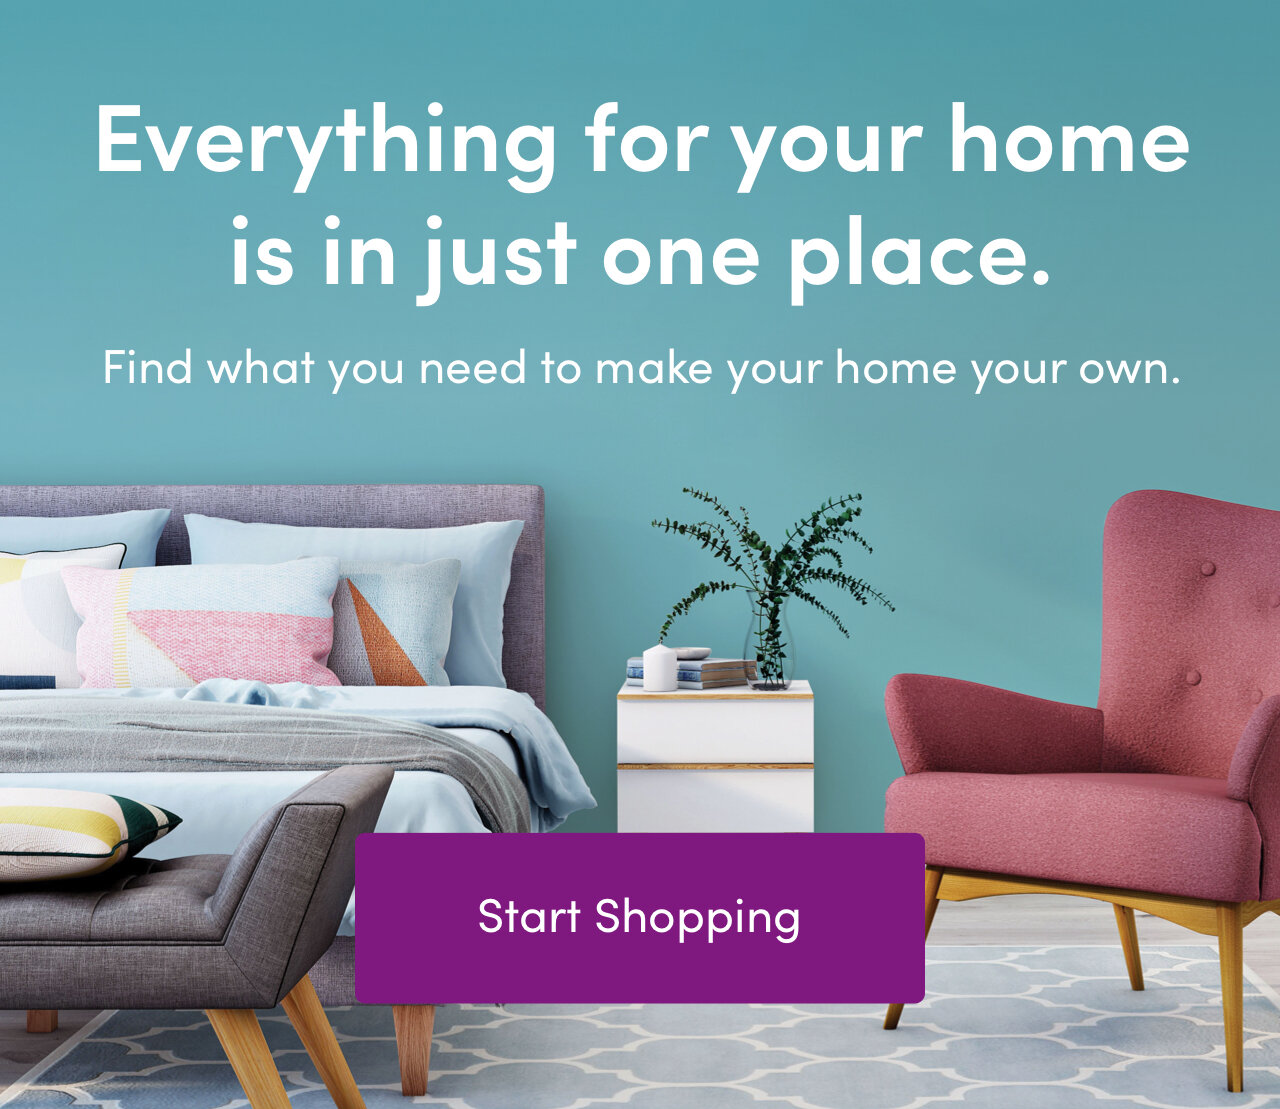 Everything for your home is in just one place. Find what you need to make your home your own. Start Shopping